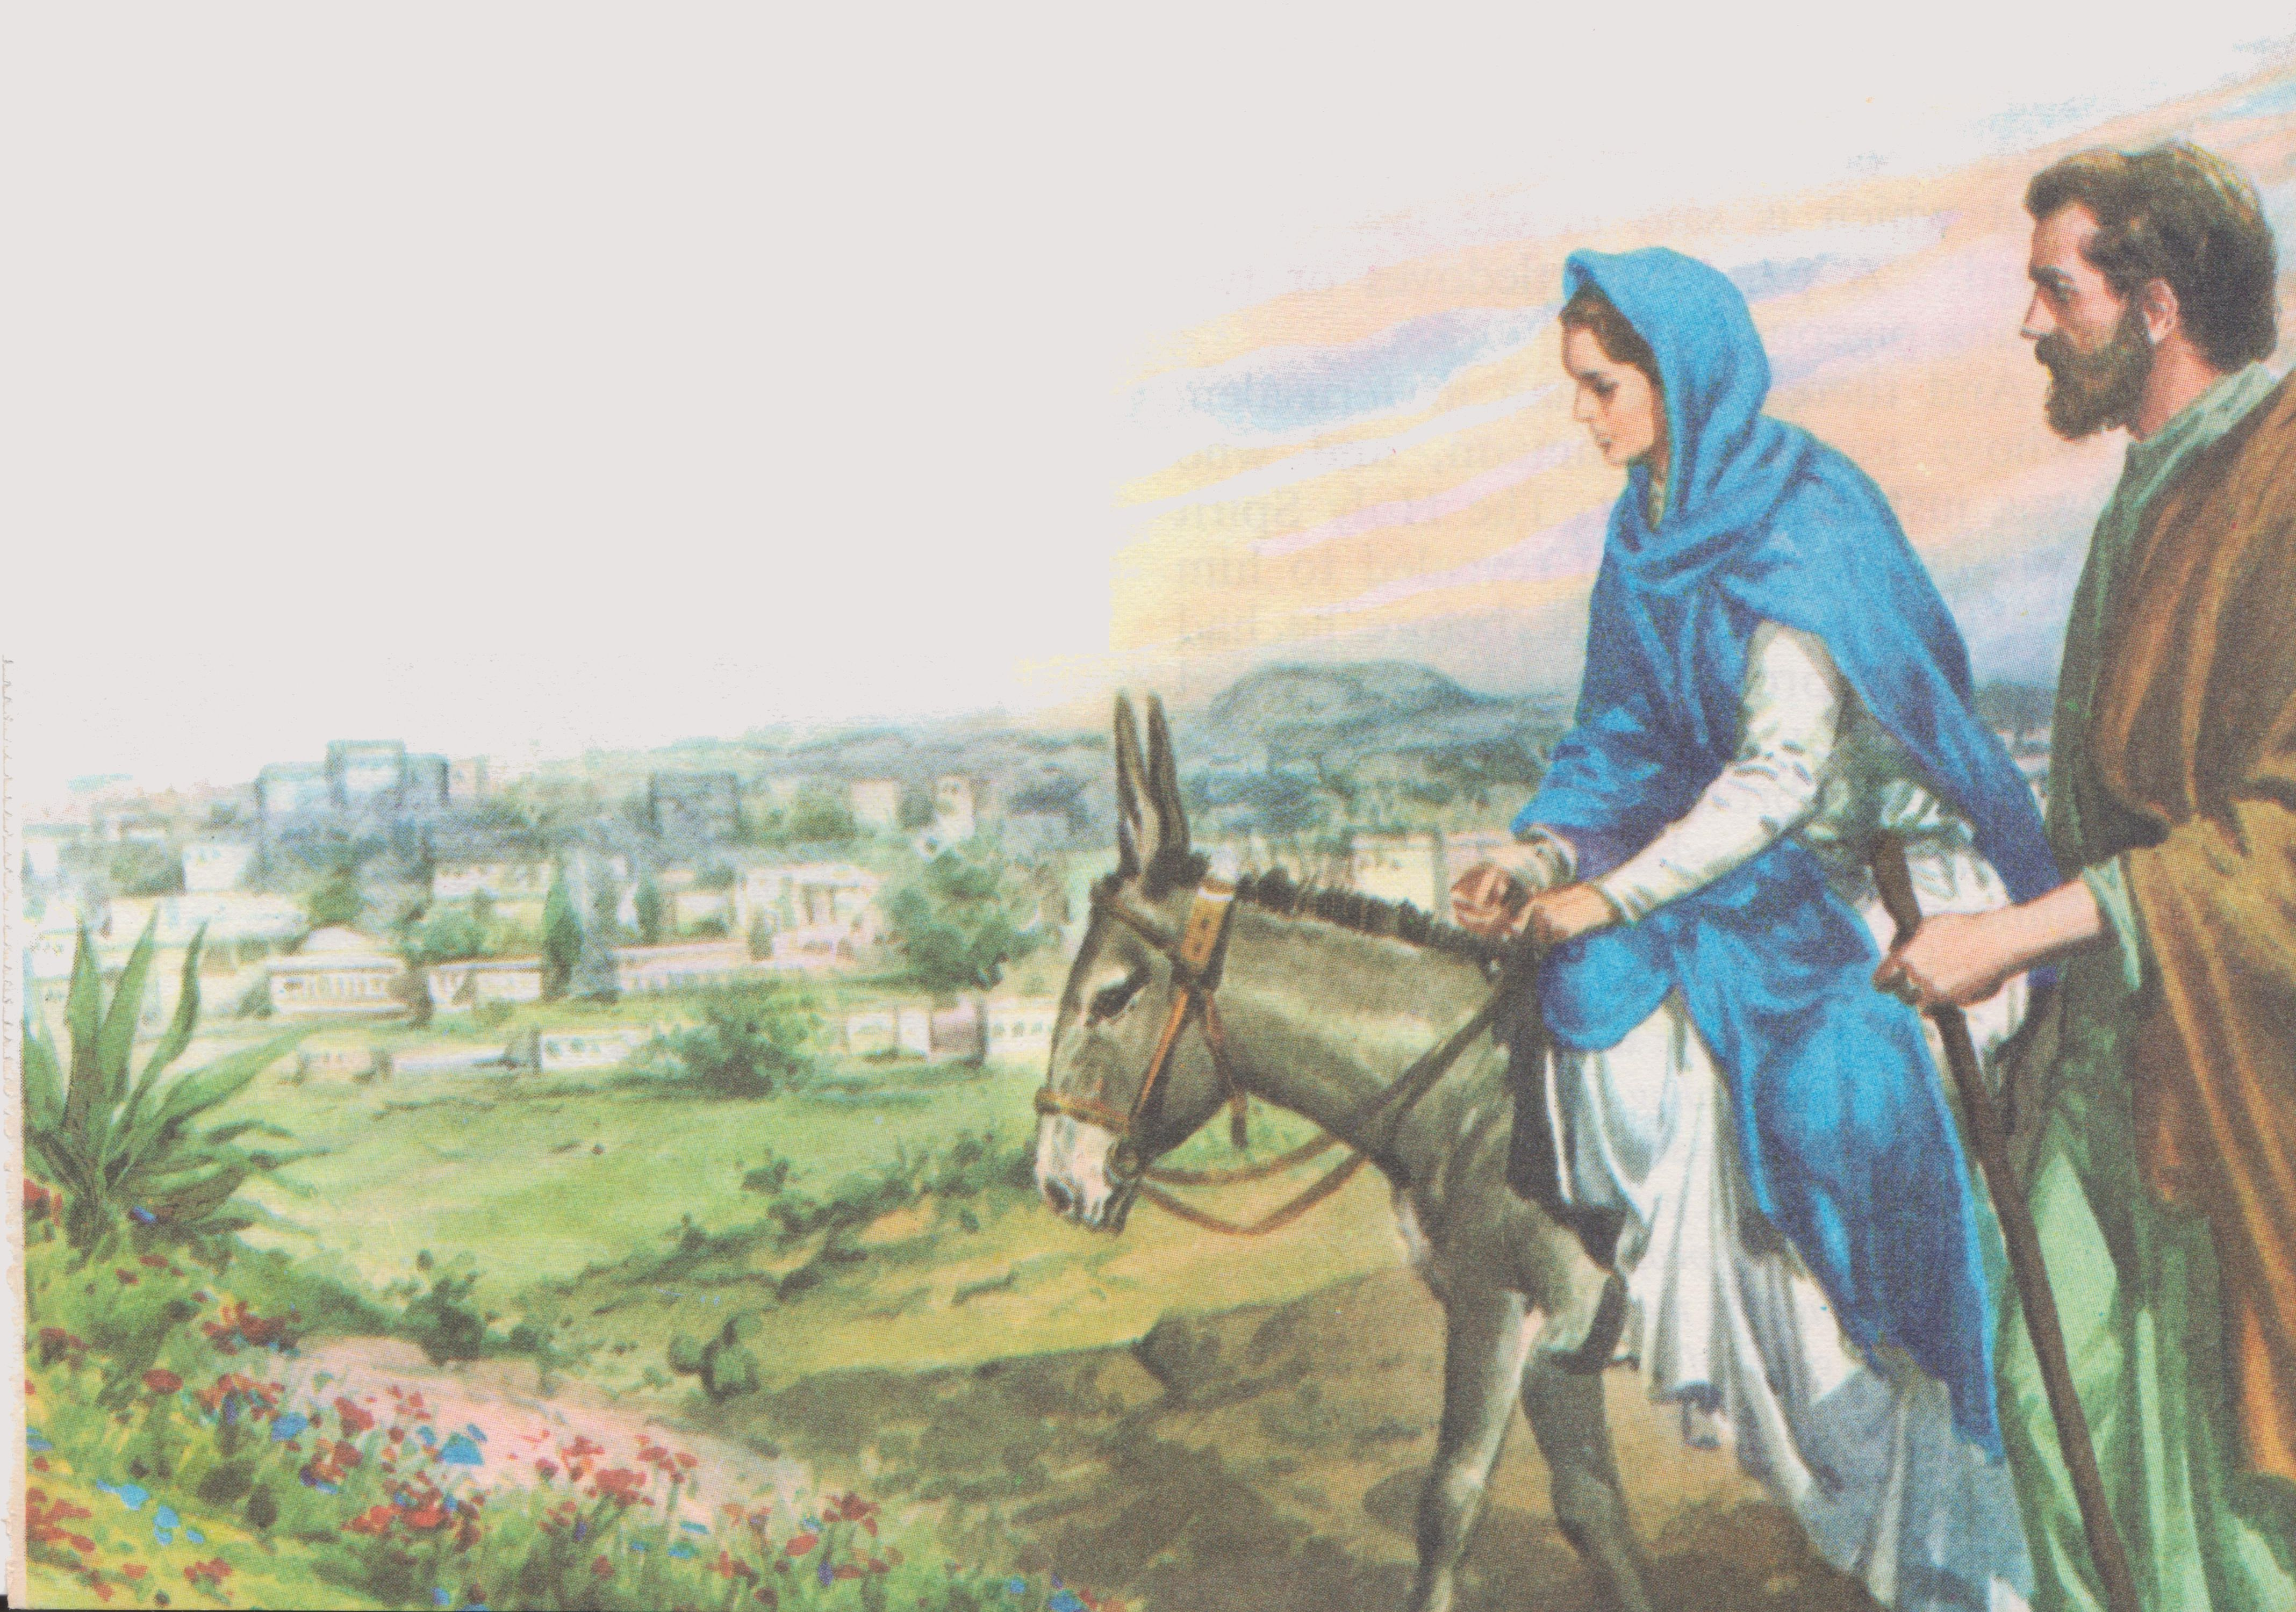 Joseph Und Joseph Mary And Joseph Traveling To Bethlehem Bible Images Bible